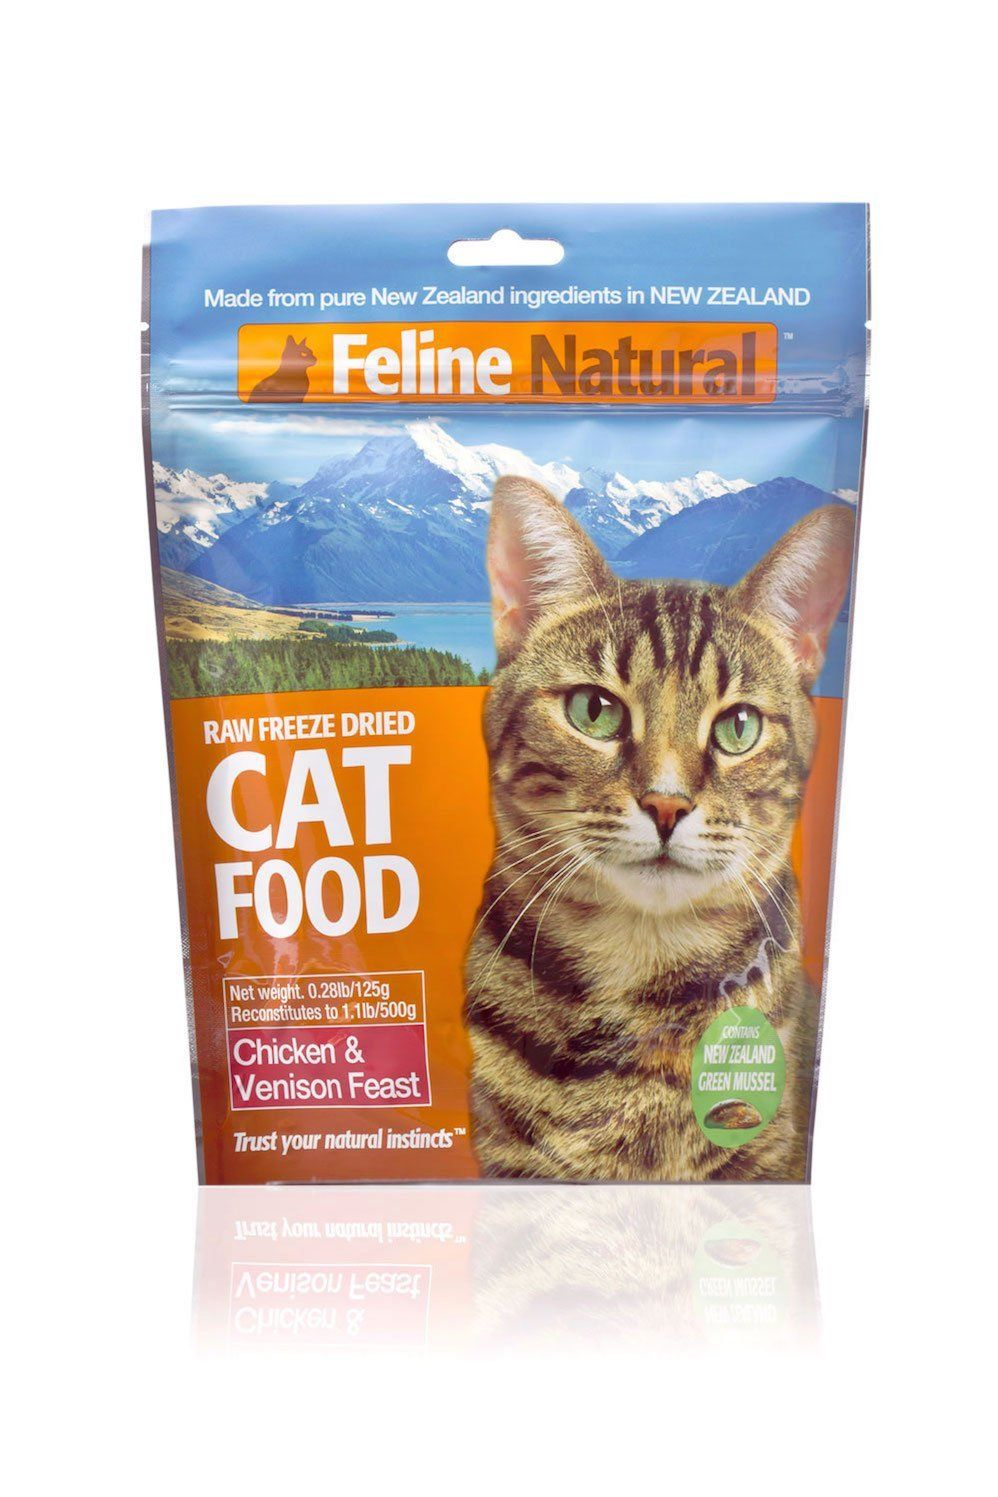 Feline Natural Raw Freeze Dried Chicken Venison Feast